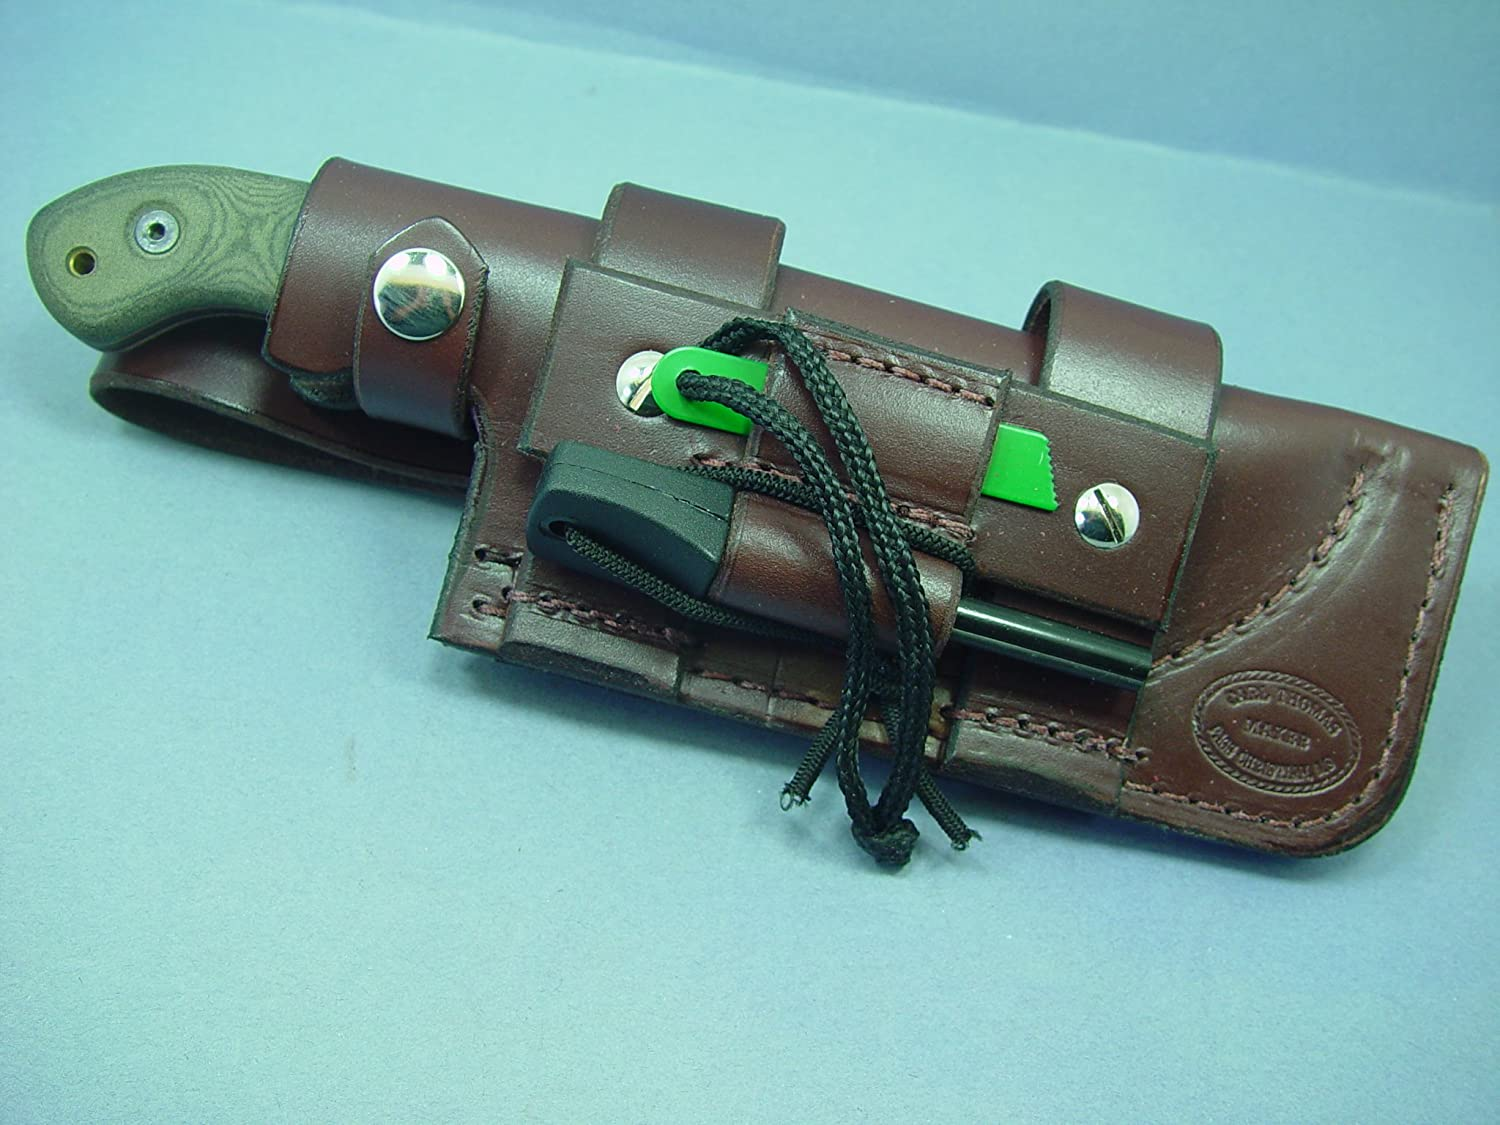 Amazon Com New Custom Made Brown Leather Horizontal Sheath For The Tom Brown Tracker Knife Q 4212 Sports Outdoors